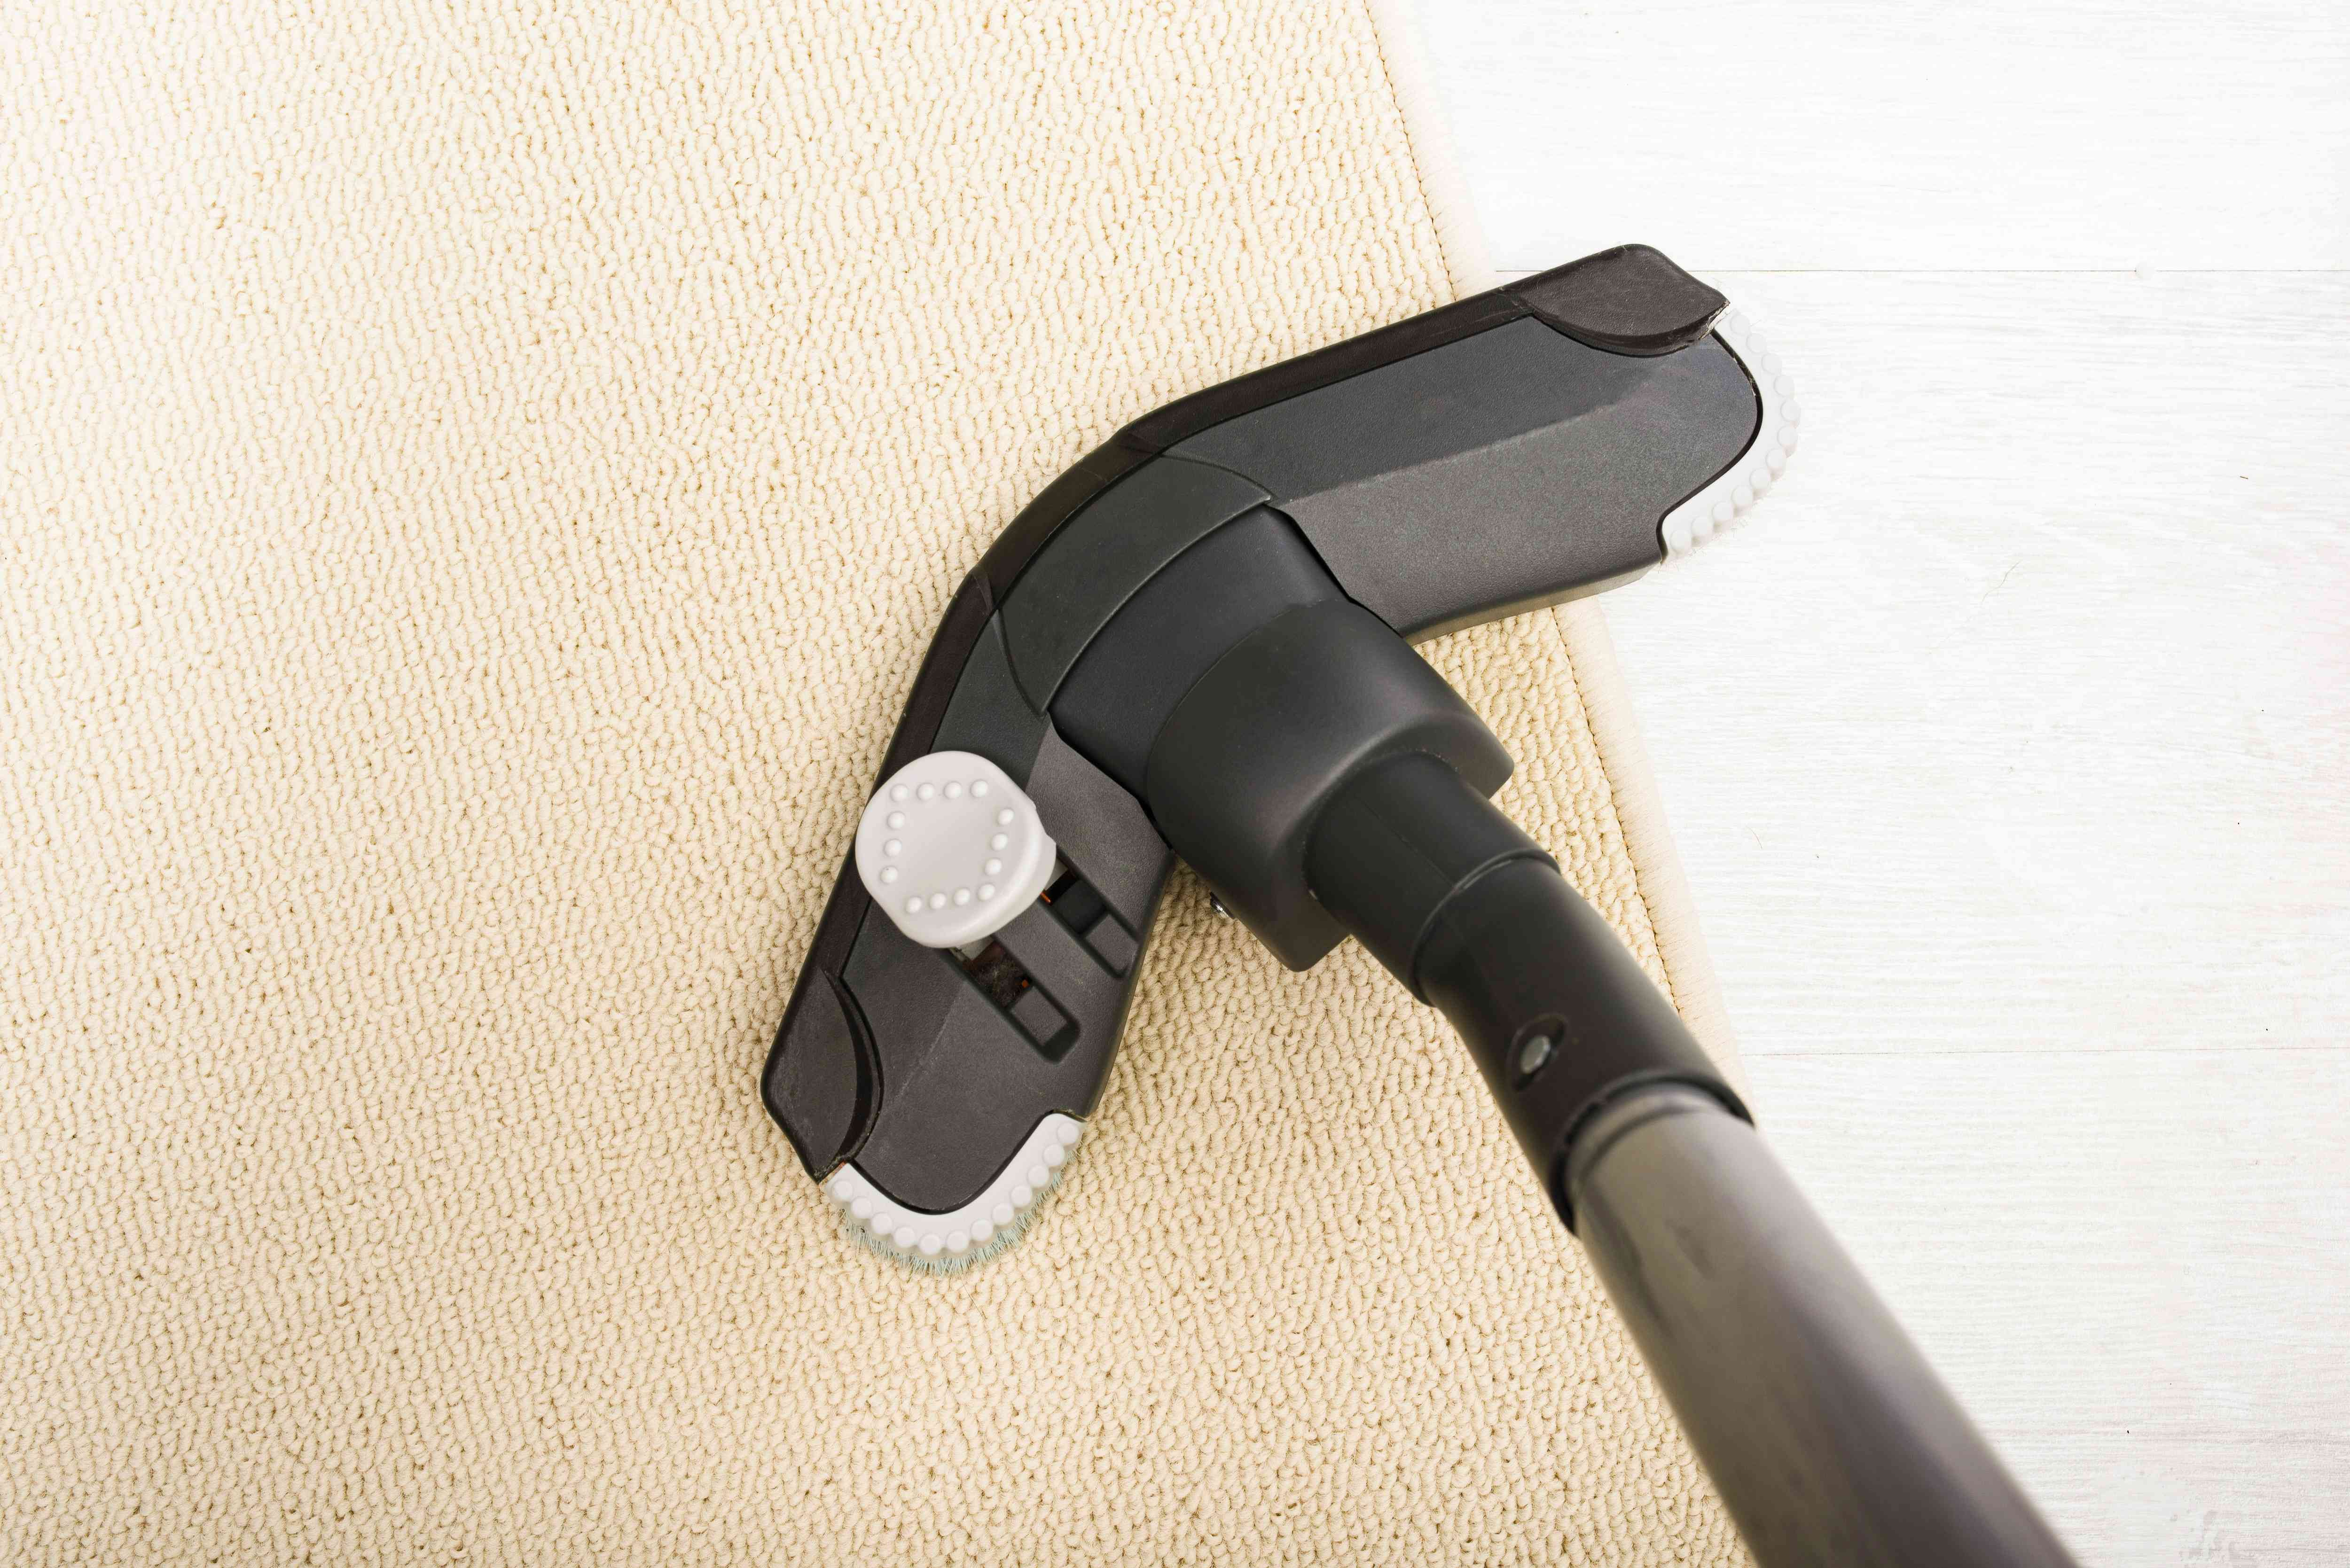 vacuuming the rug post stain removal